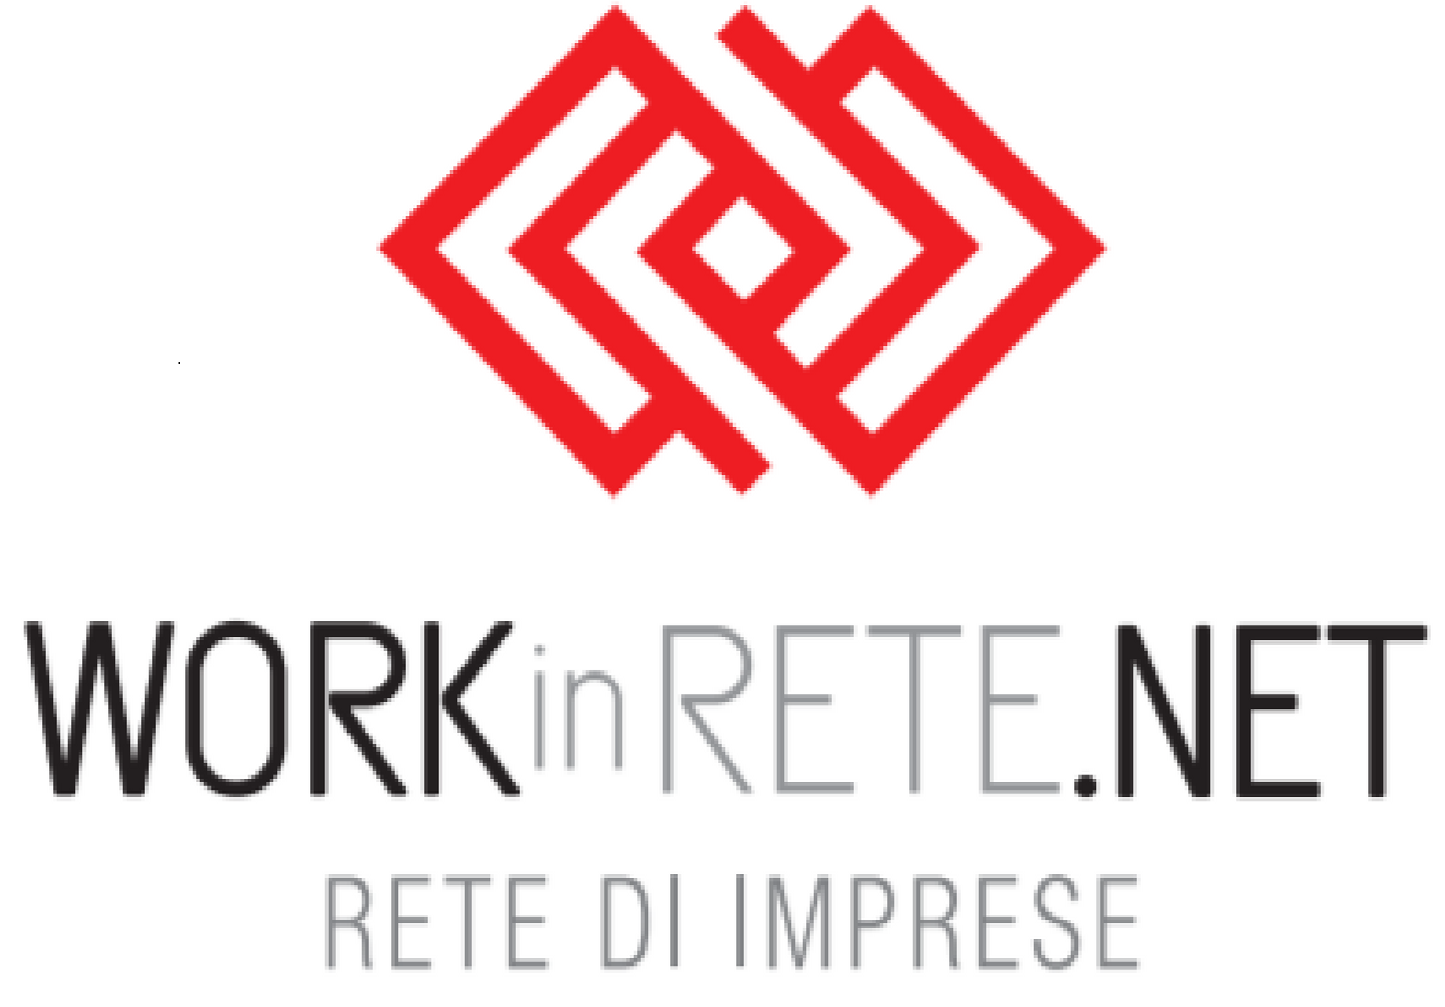 Workinrete.net